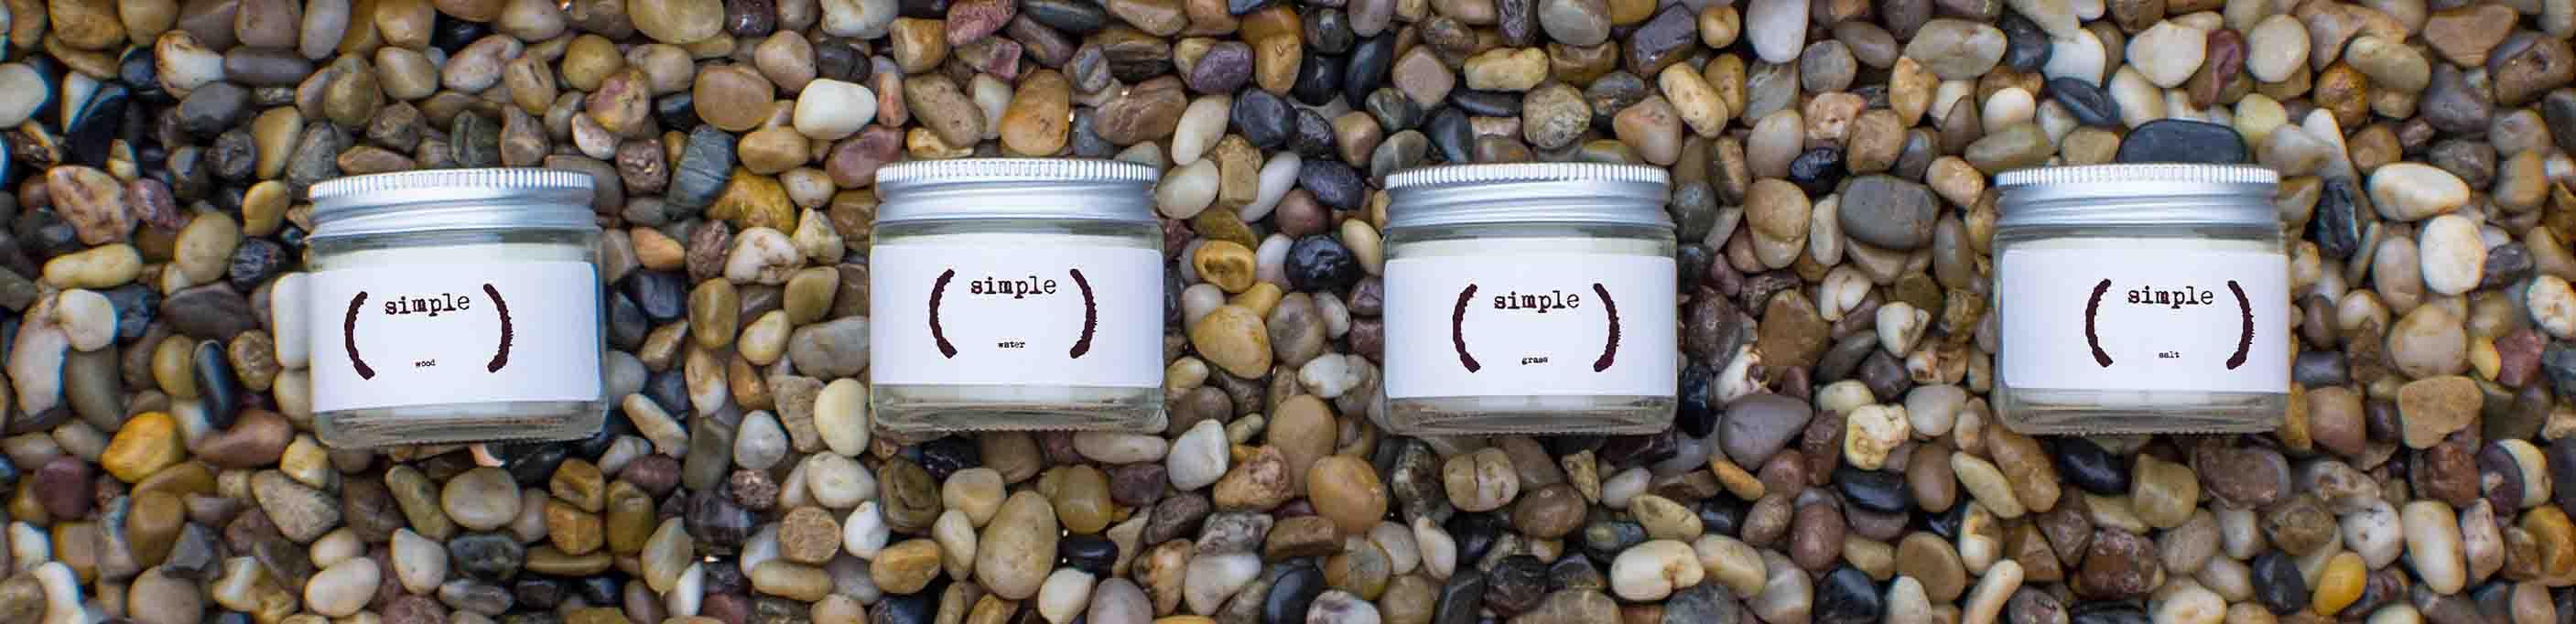 Candle Jars - Smaller Sizes